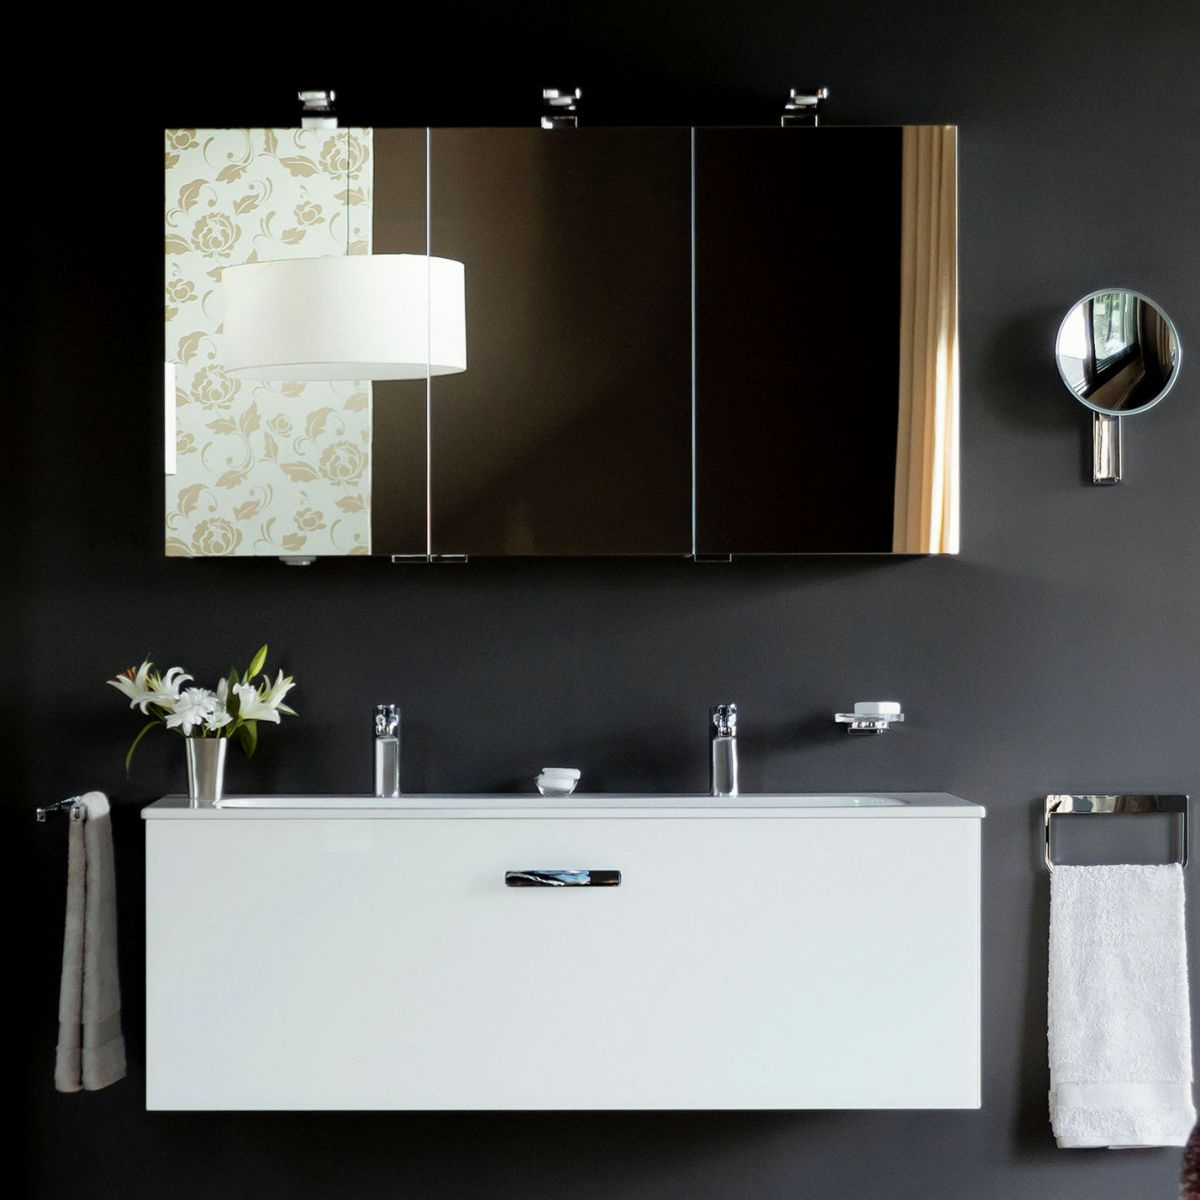 Bathroom Wall Mirror Cabinets With Regard To Fashionable Bathroom Cabinets, Also Available With Mirrors & Lights : Uk Bathrooms (View 2 of 20)